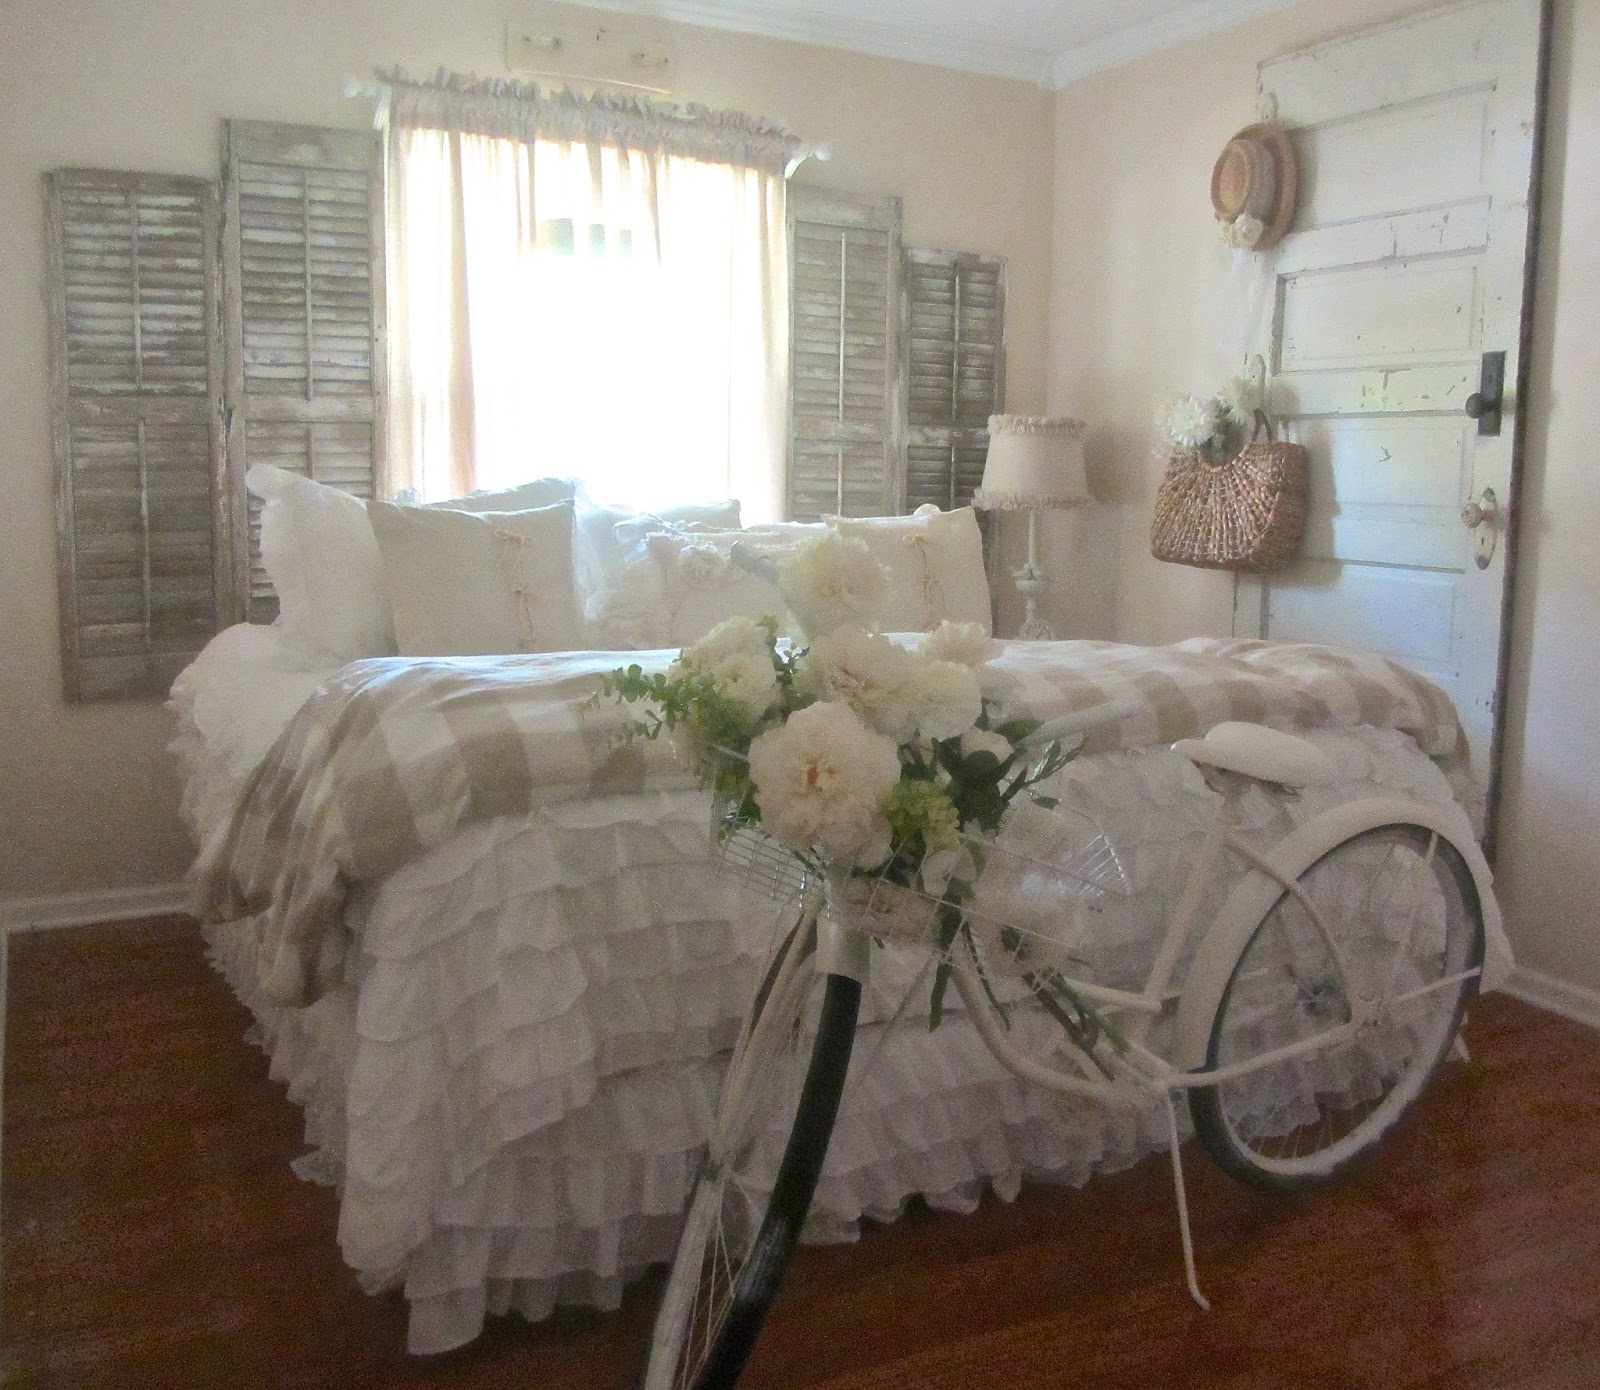 Junk chic cottage update on guest room and new treasures for Muebles para recamara vintage